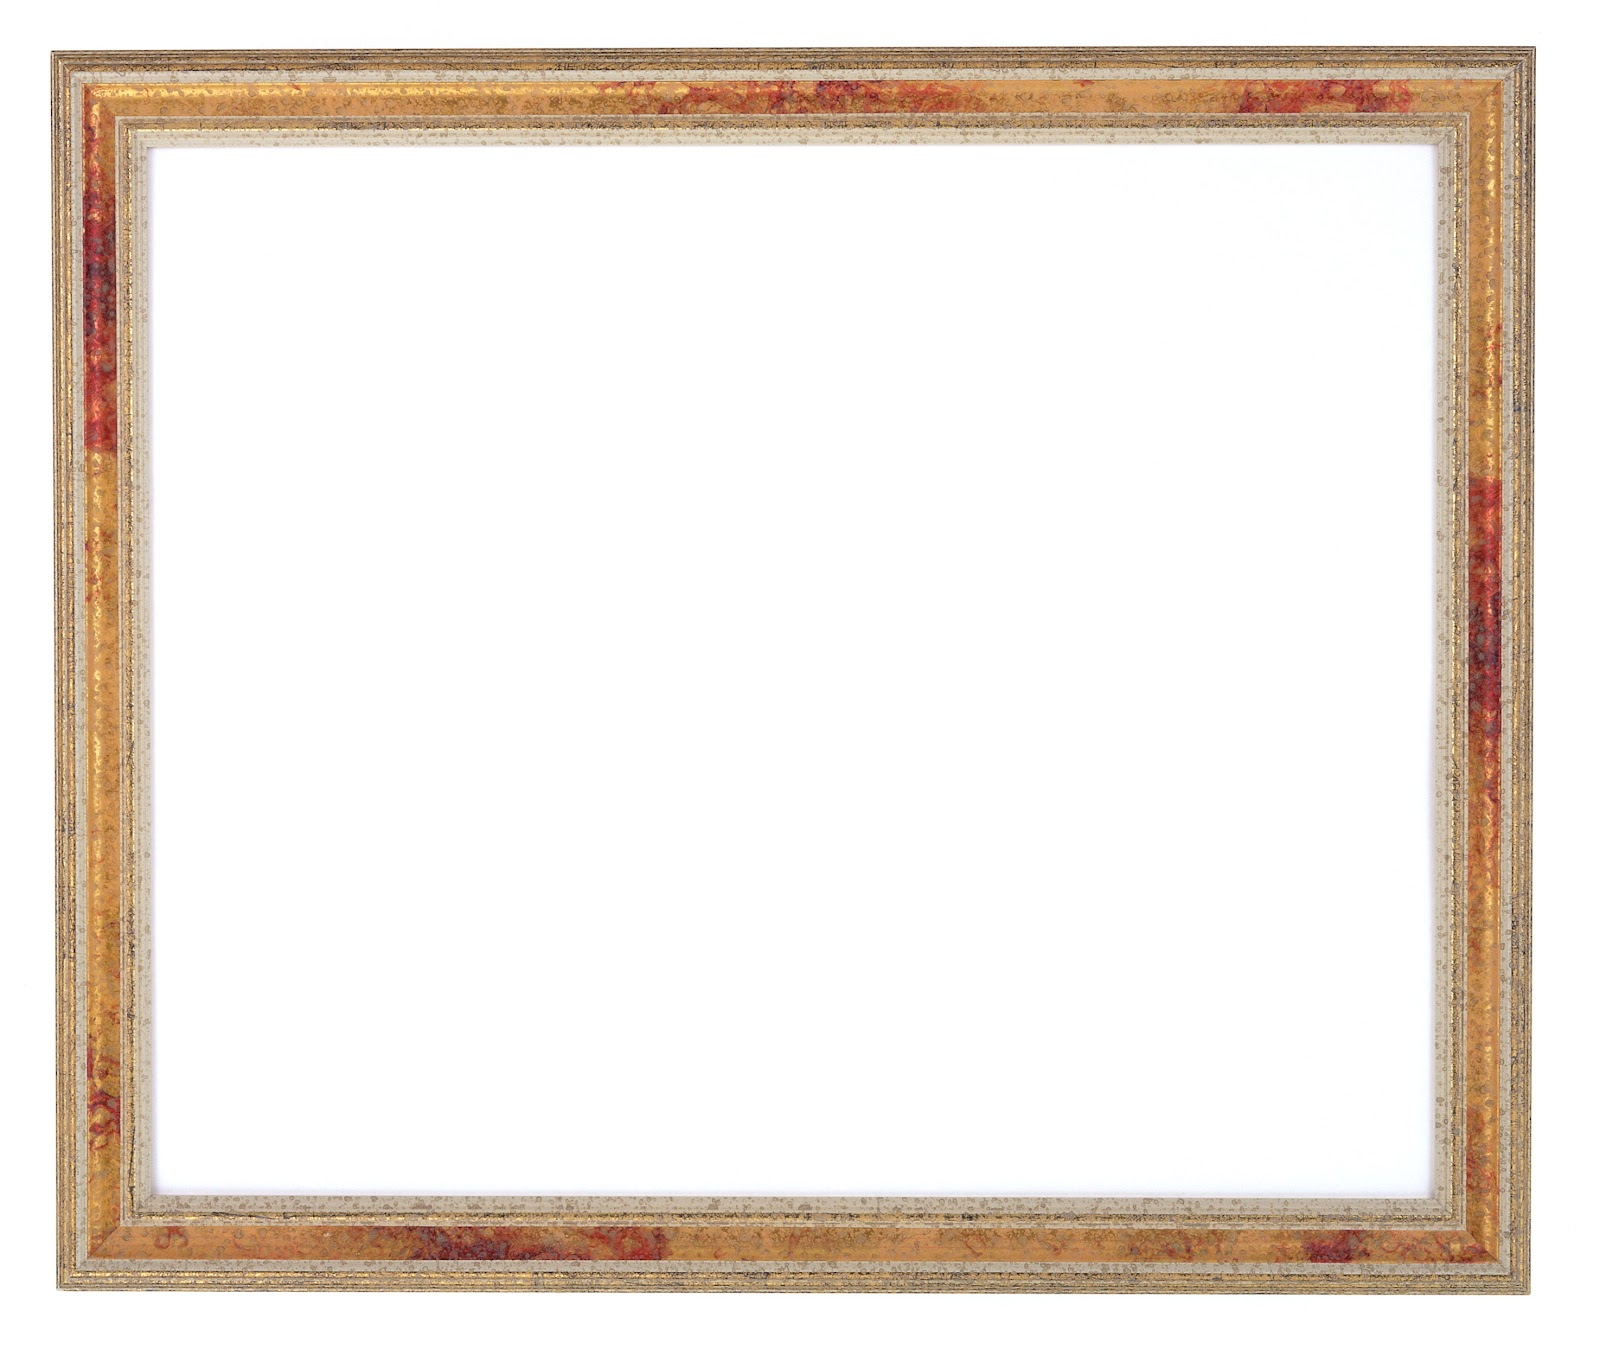 Seenwall Photo Frame Wallpaper Gallery HD Wallpapers Download Free Images Wallpaper [1000image.com]